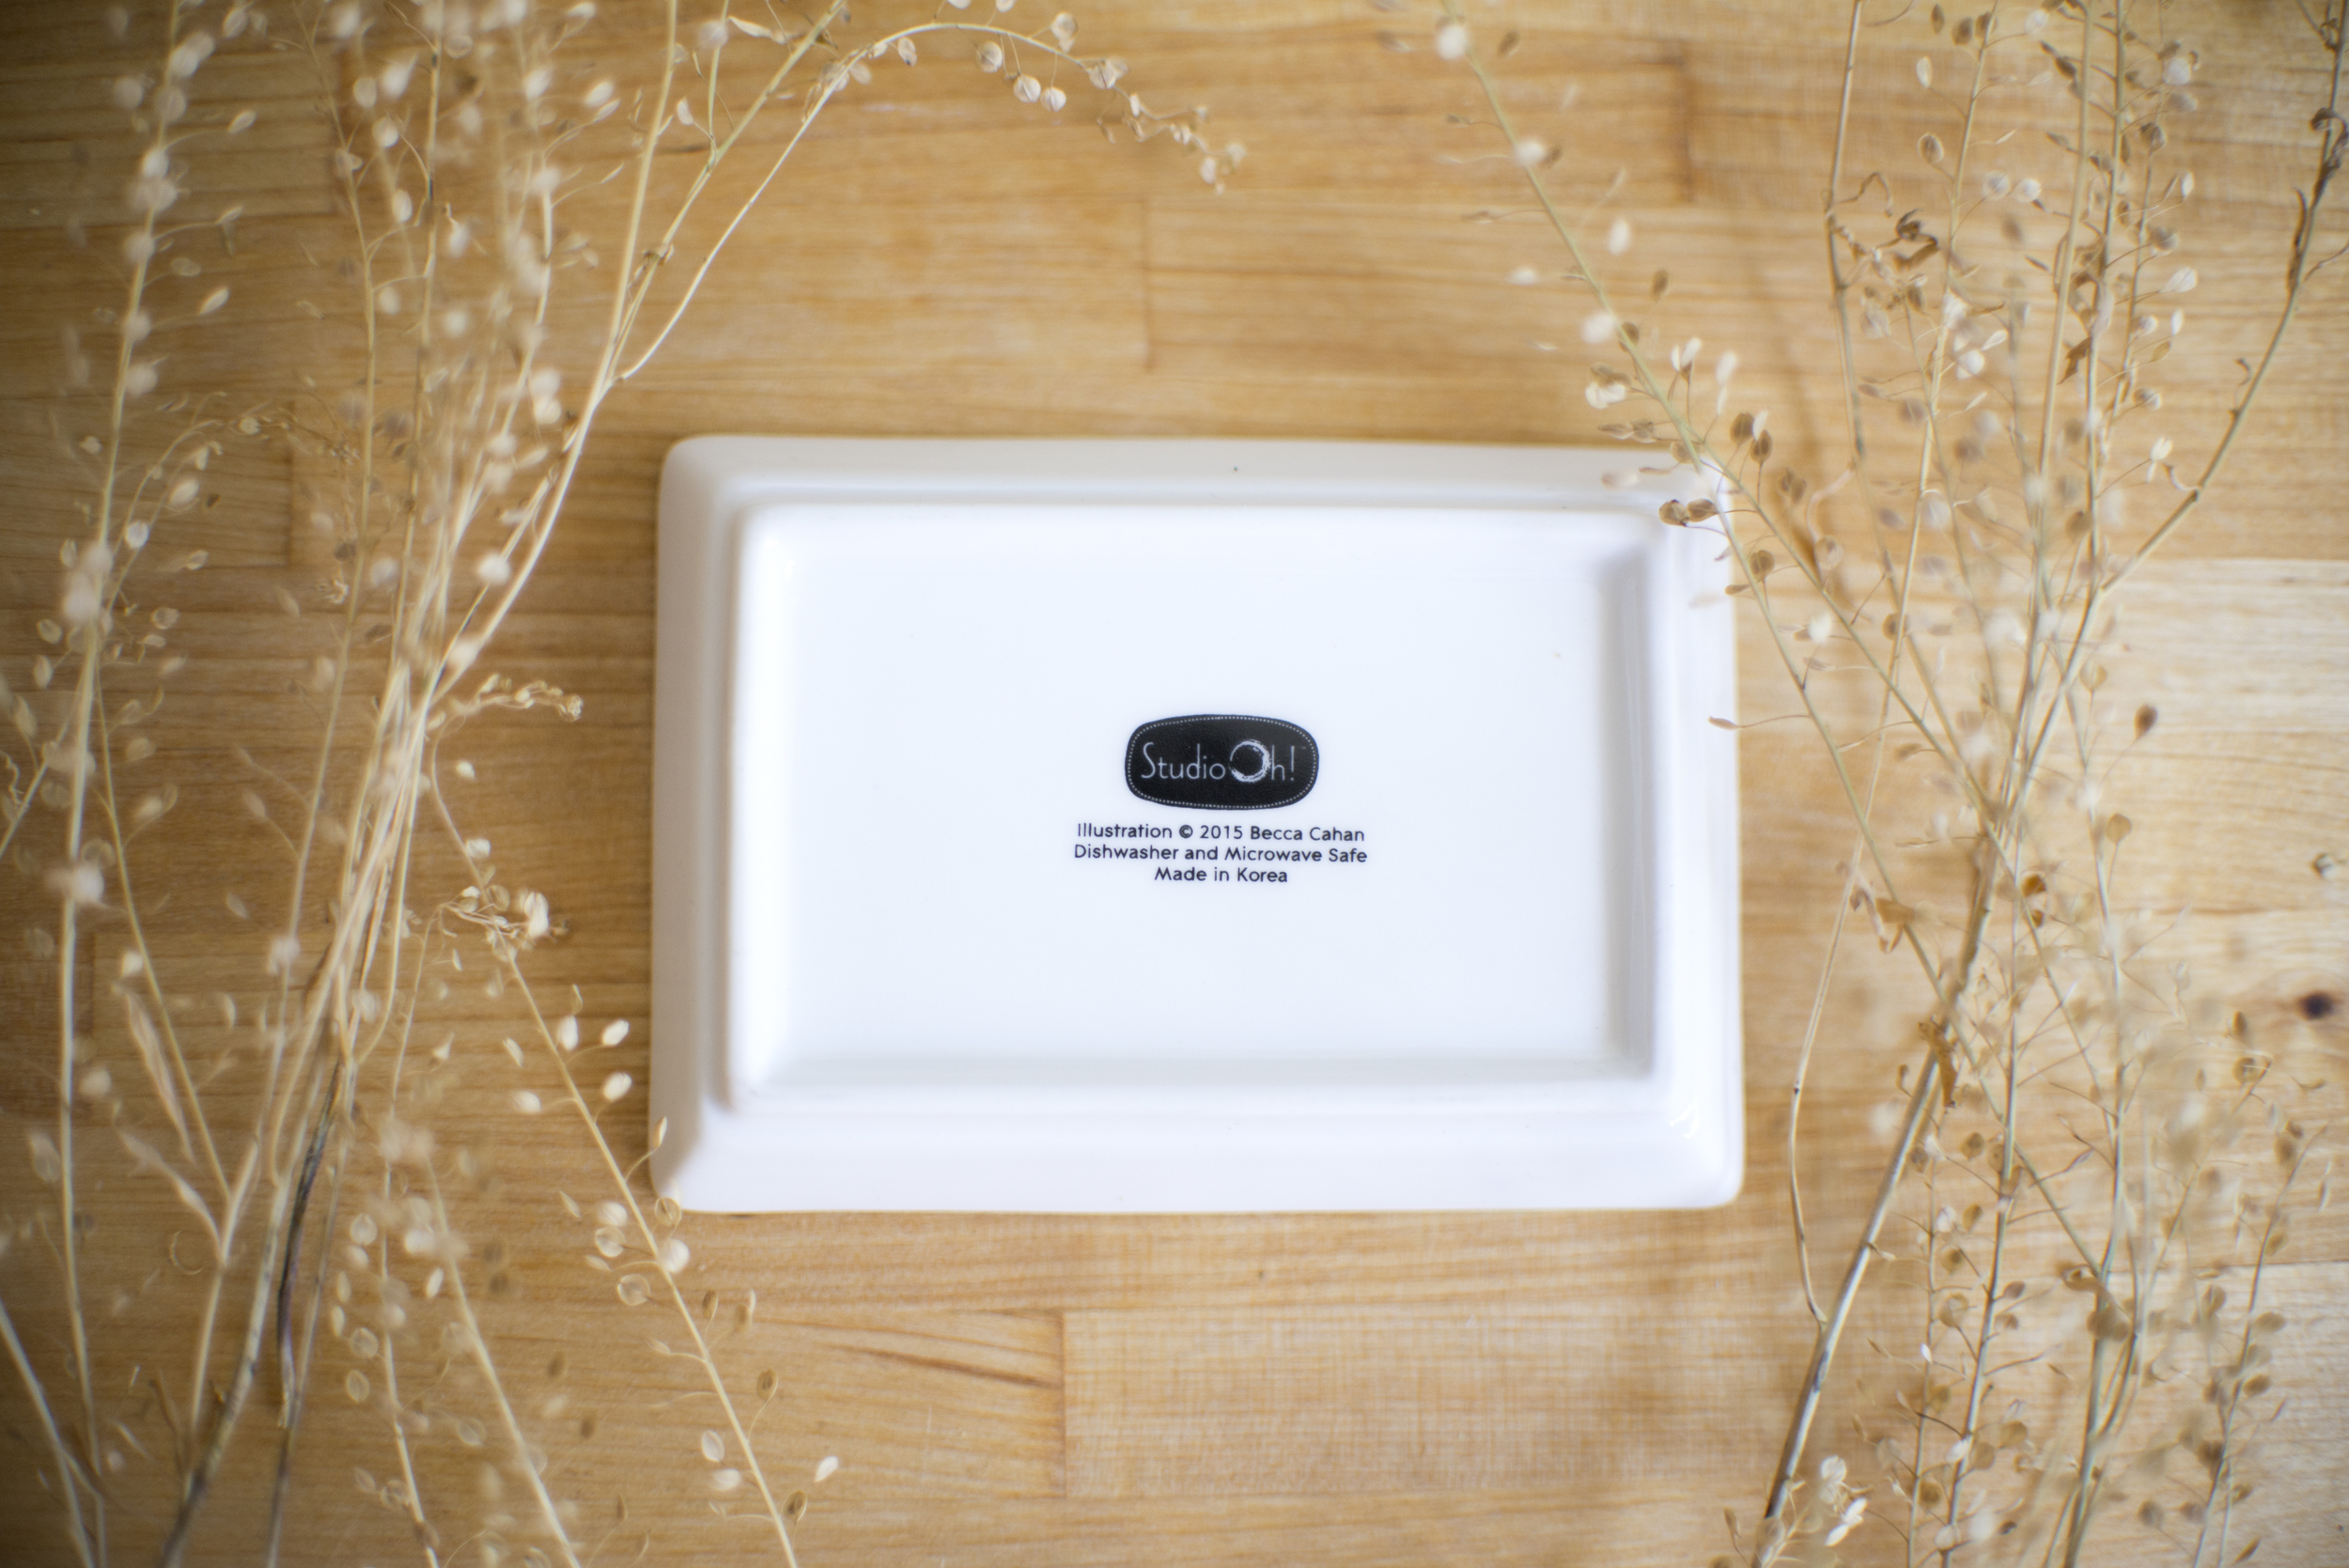 Studio Oh! trinket dishes by Becca Cahan